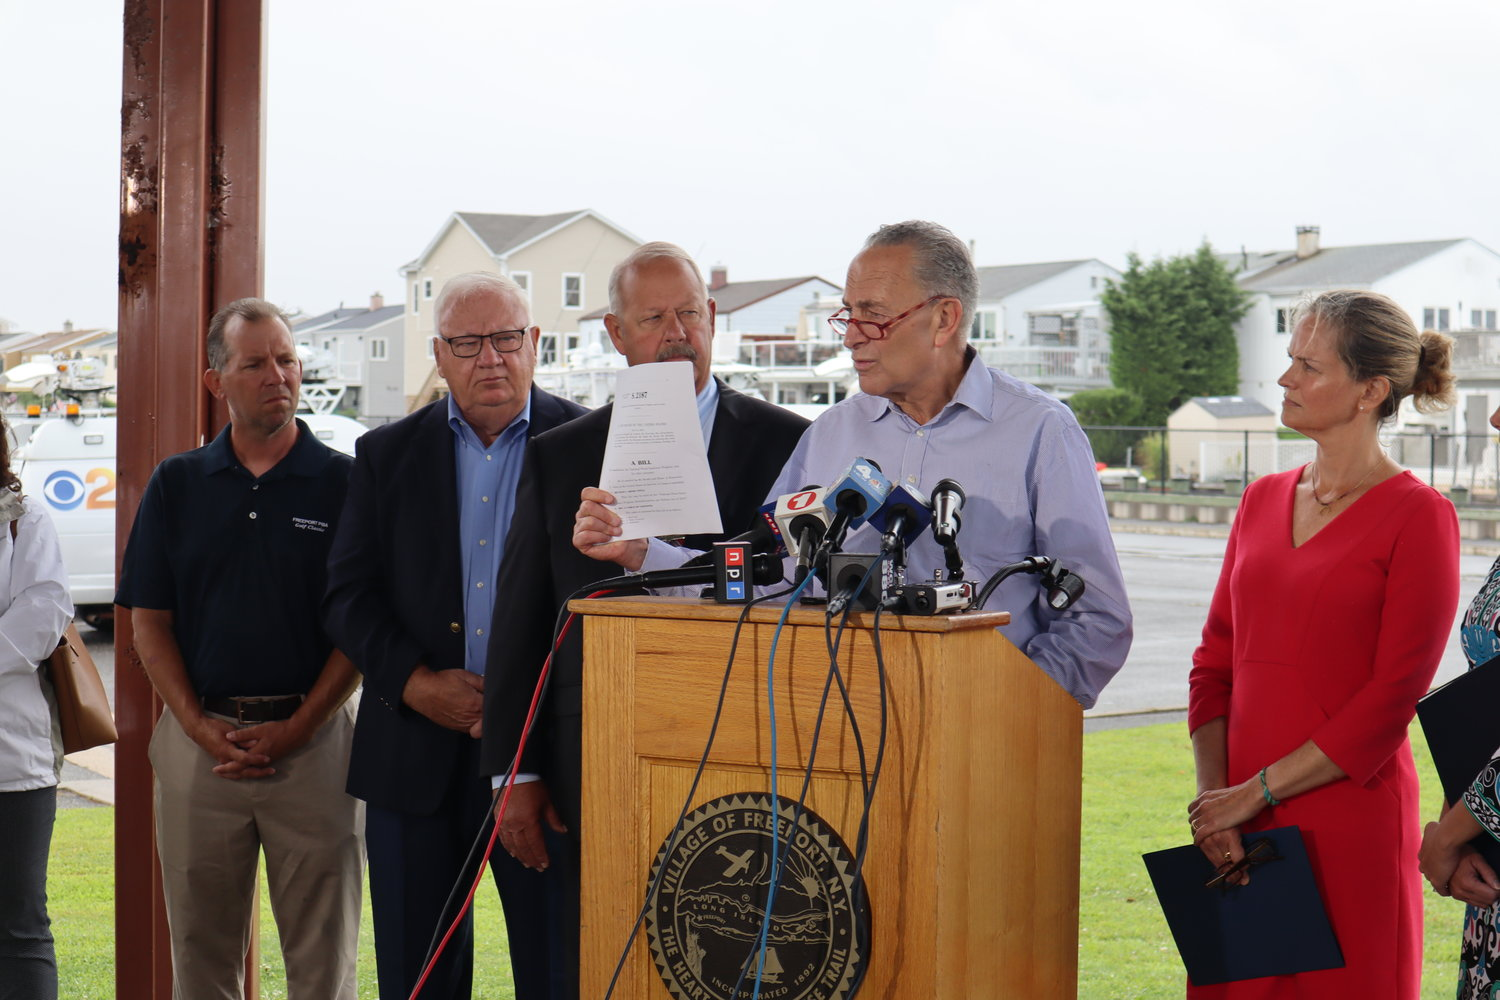 Sen. Charles Schumer introduced his flood insurance reform bill at a news conference in Freeport on Wednesday. With him, from left, were Freeport Trustee Christopher Squeri, Freeport Mayor Robert Kennedy, County Executive Laura Curran and Hempstead Town Supervisor Laura Gillen.